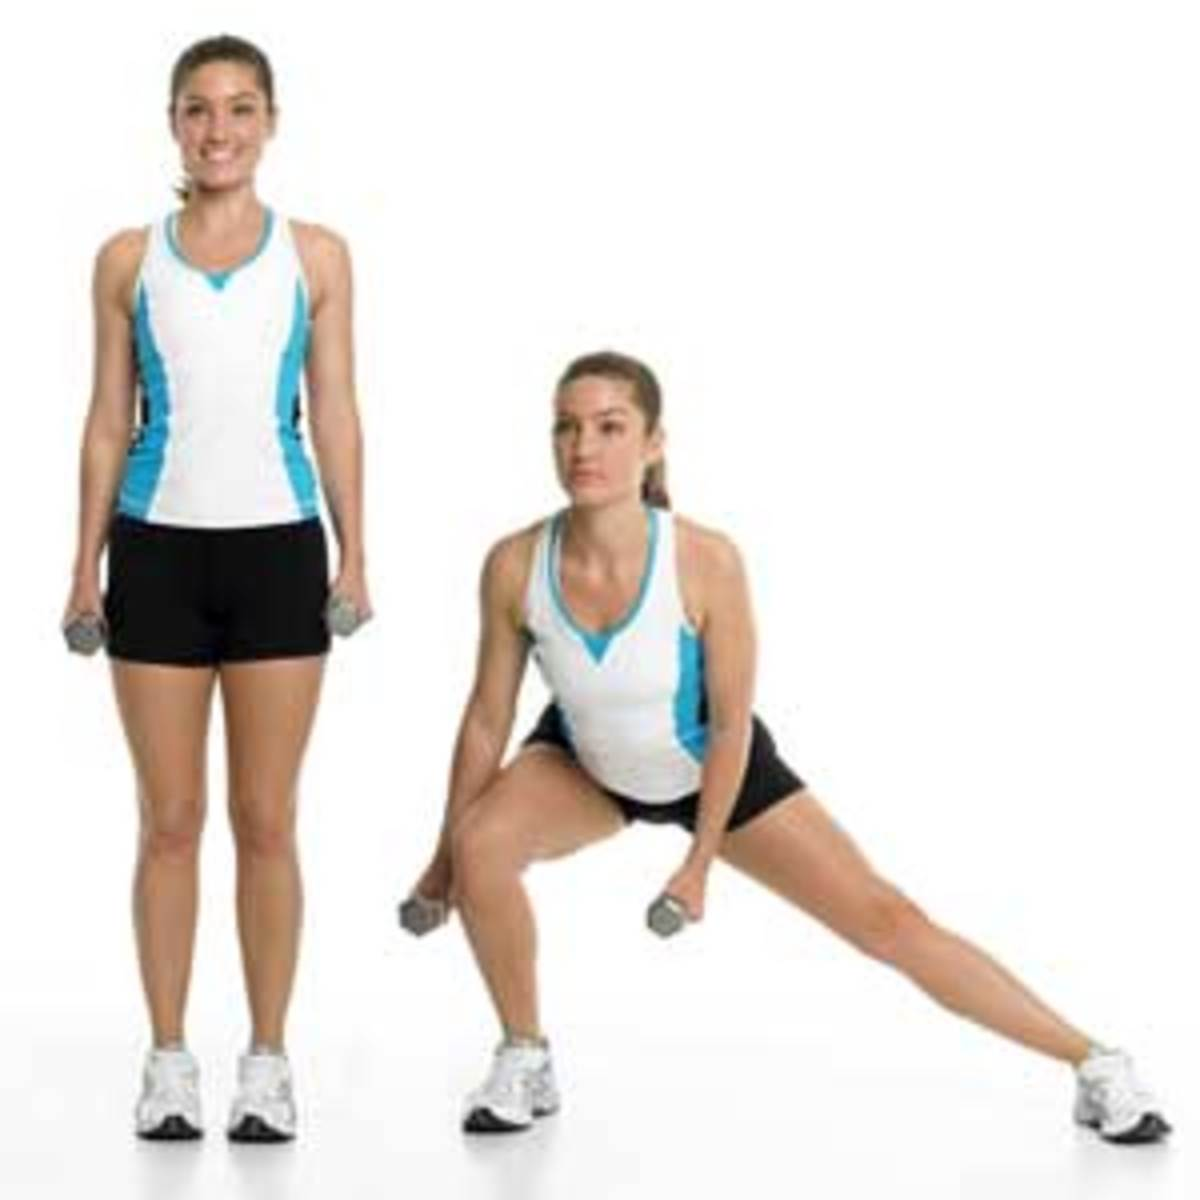 A side lunge, one of the many exercises you'll perform during P90X: Legs and Back.  Go nice and low, but be mindful of your knees if you have patellar tracking problems!